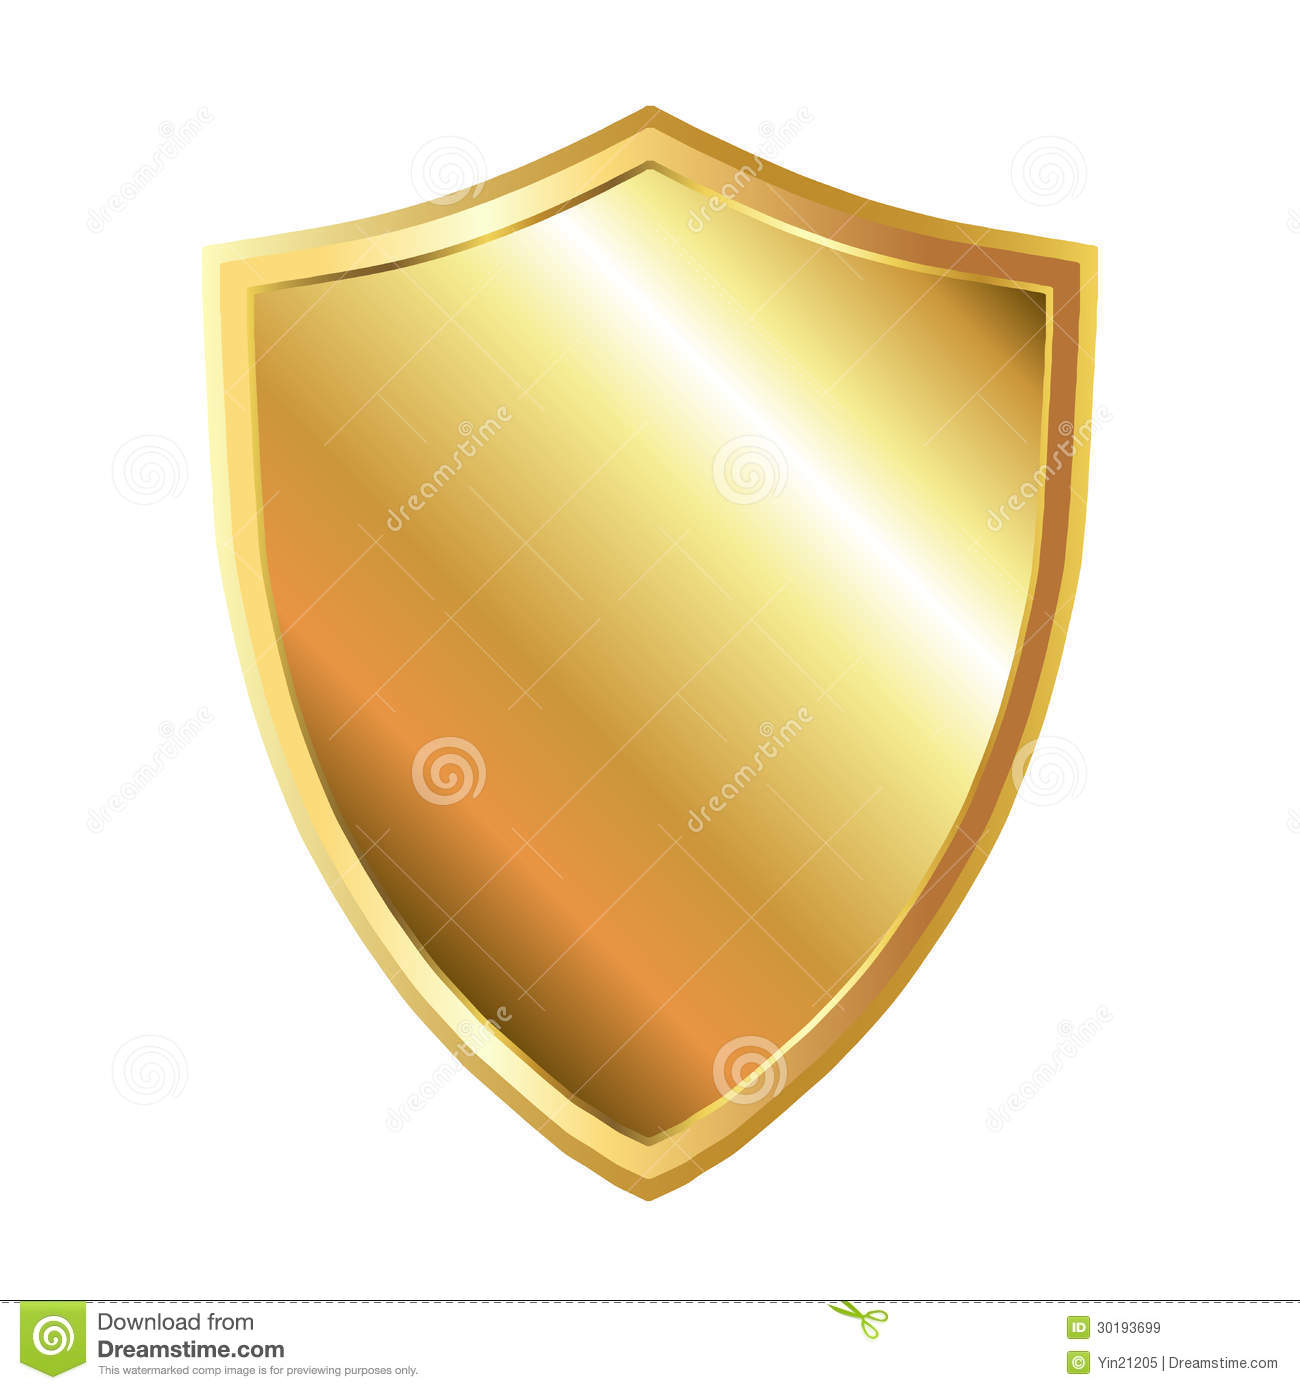 Gold Shield Royalty Free Stock Images - Image: 30193699